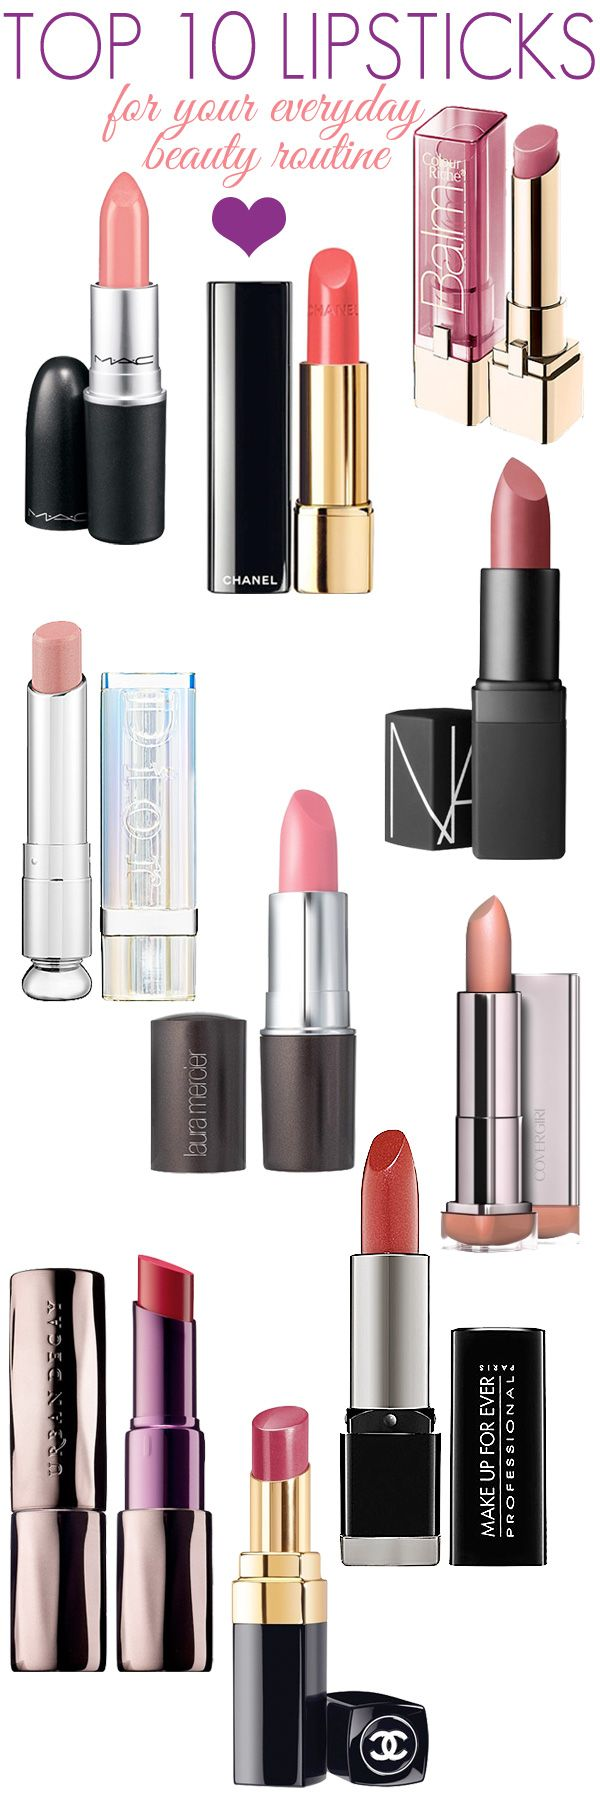 Top 10 Favorite Lipsticks.